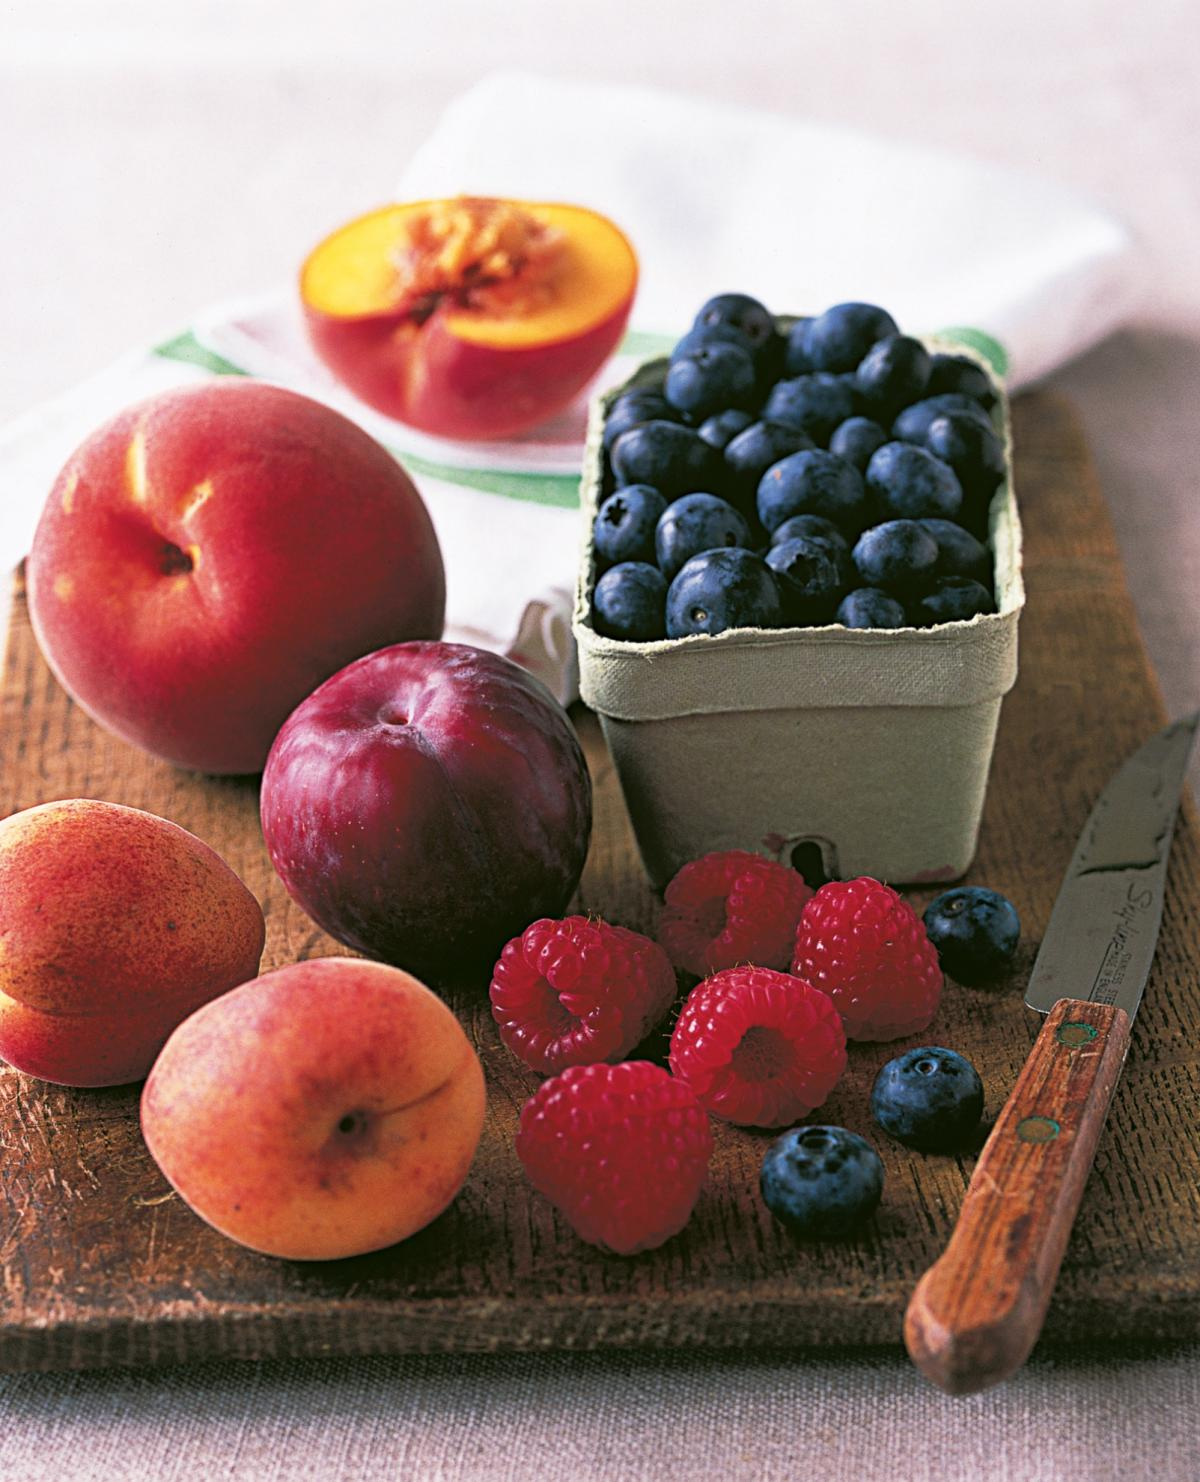 A picture of Delia's Soft Fruits recipes